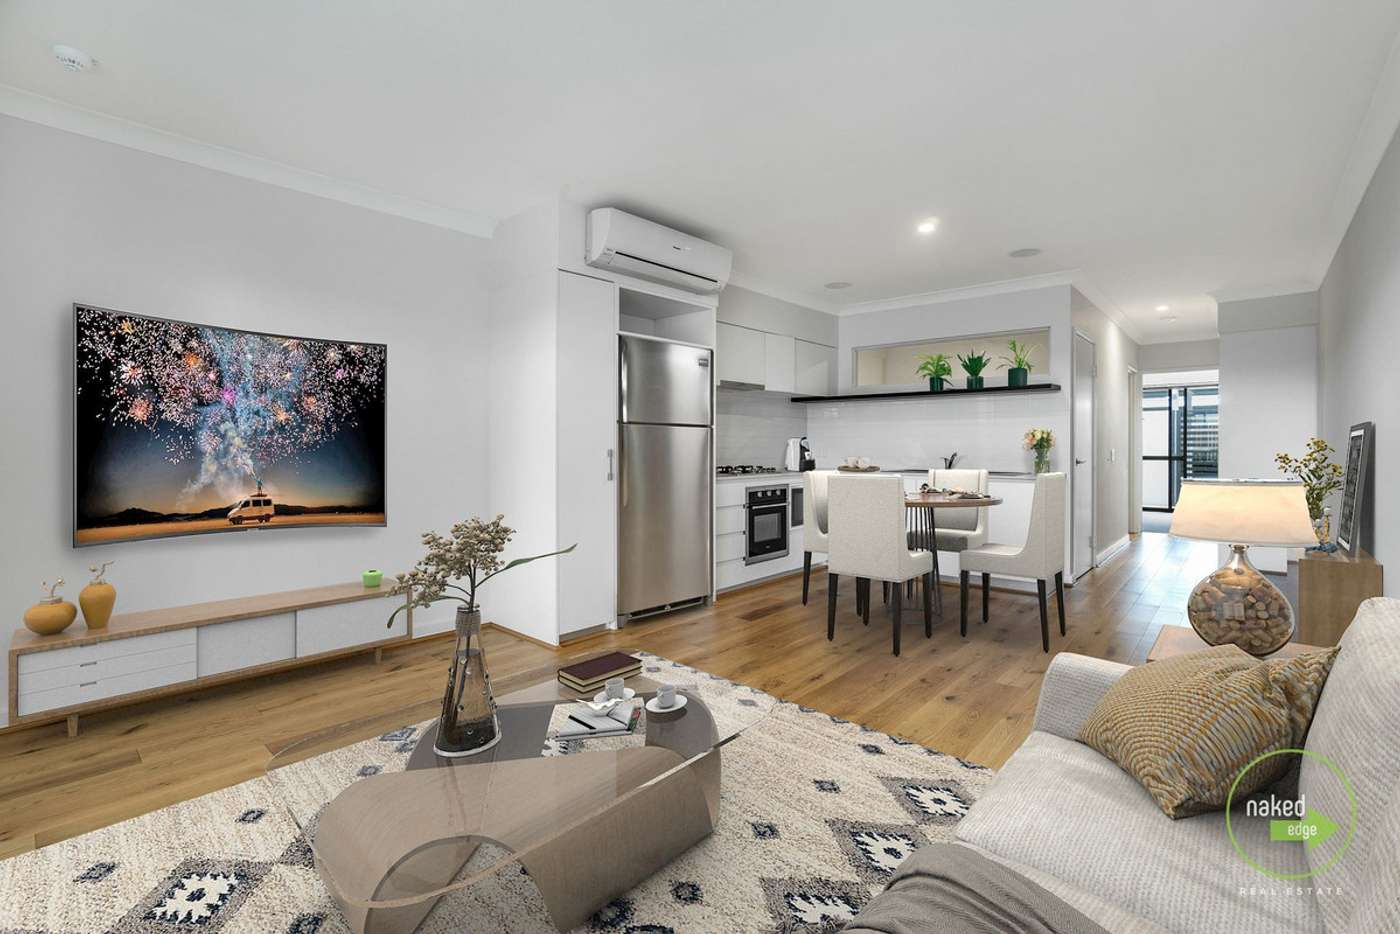 Main view of Homely apartment listing, 14/1 Glenariff Boulevard, Canning Vale WA 6155